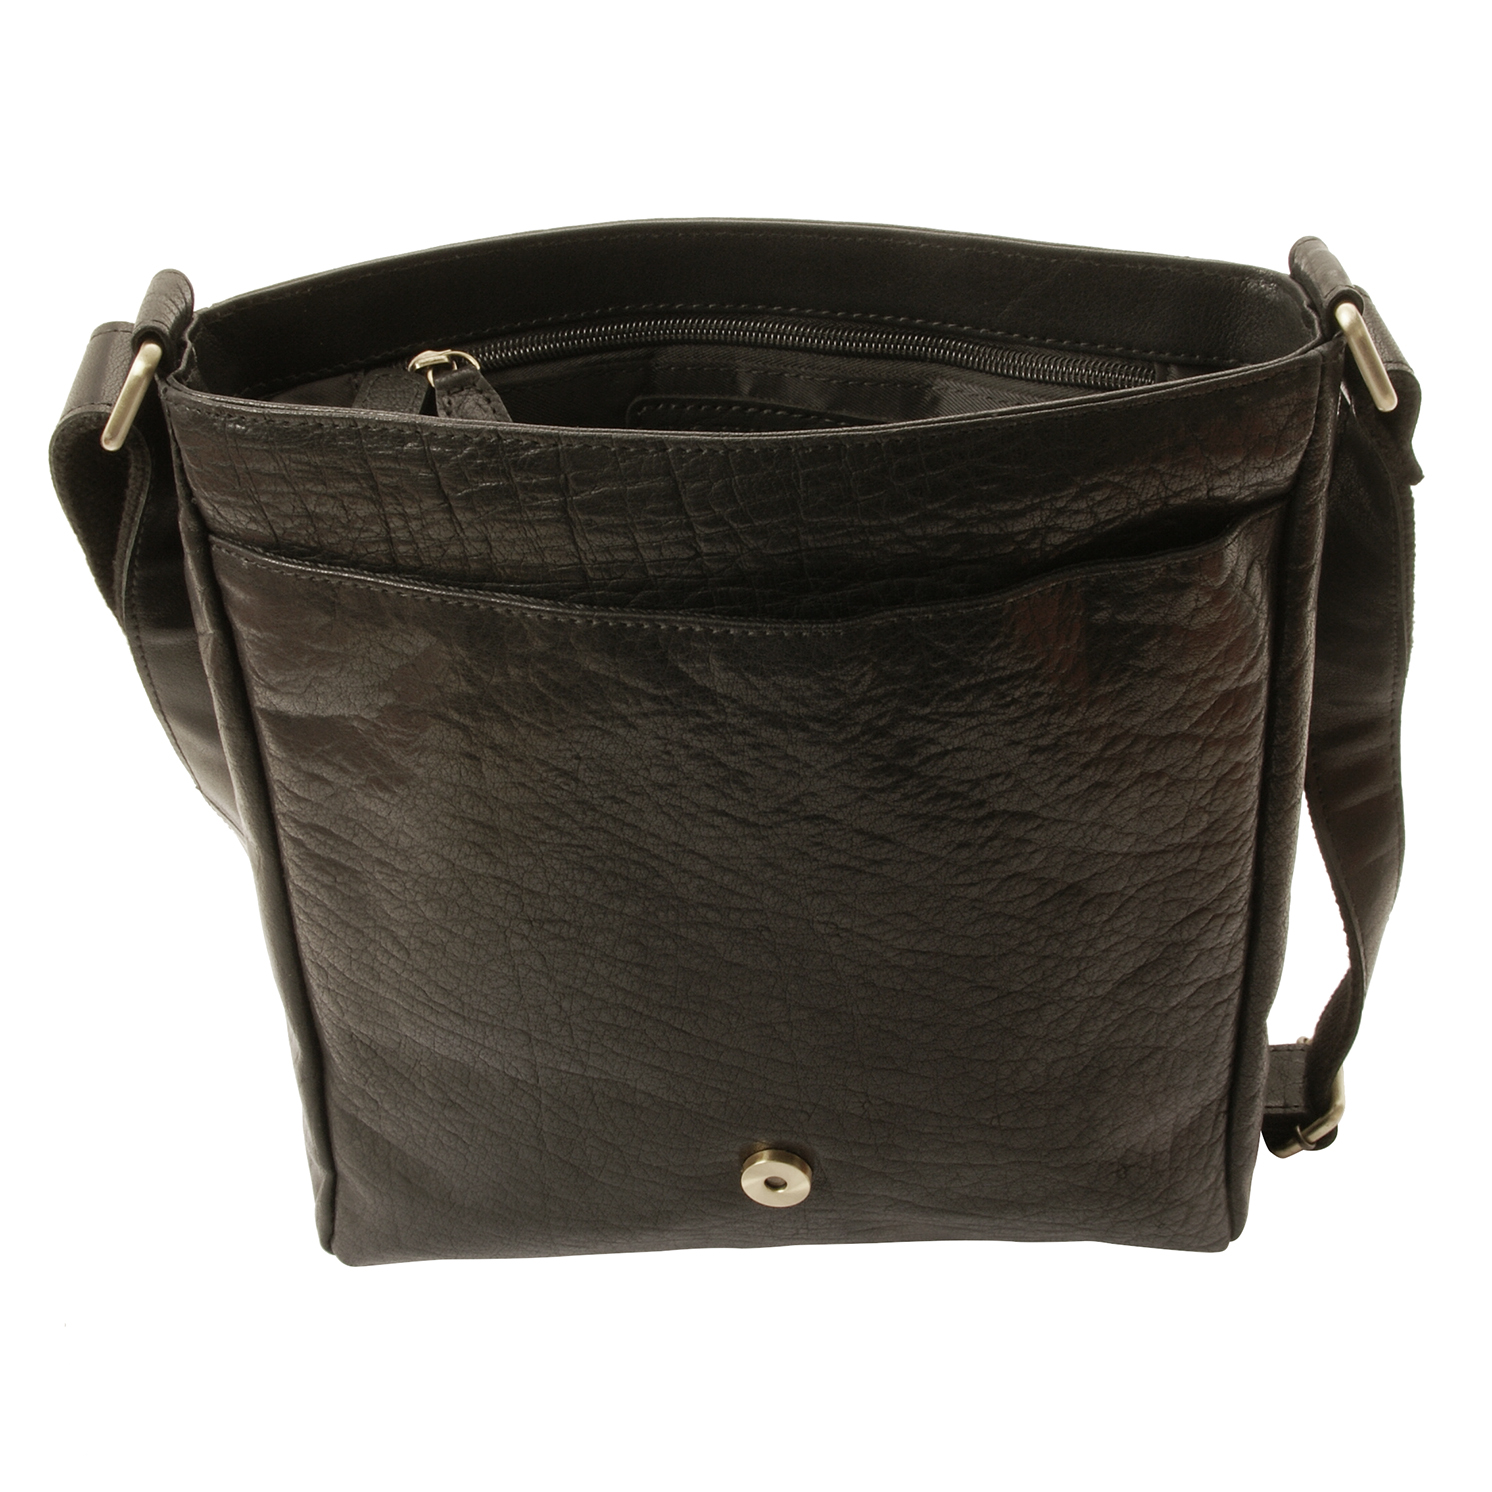 Rowallan – Black Veneer North/South Front Flap Messenger Bag in Buffalo Leather